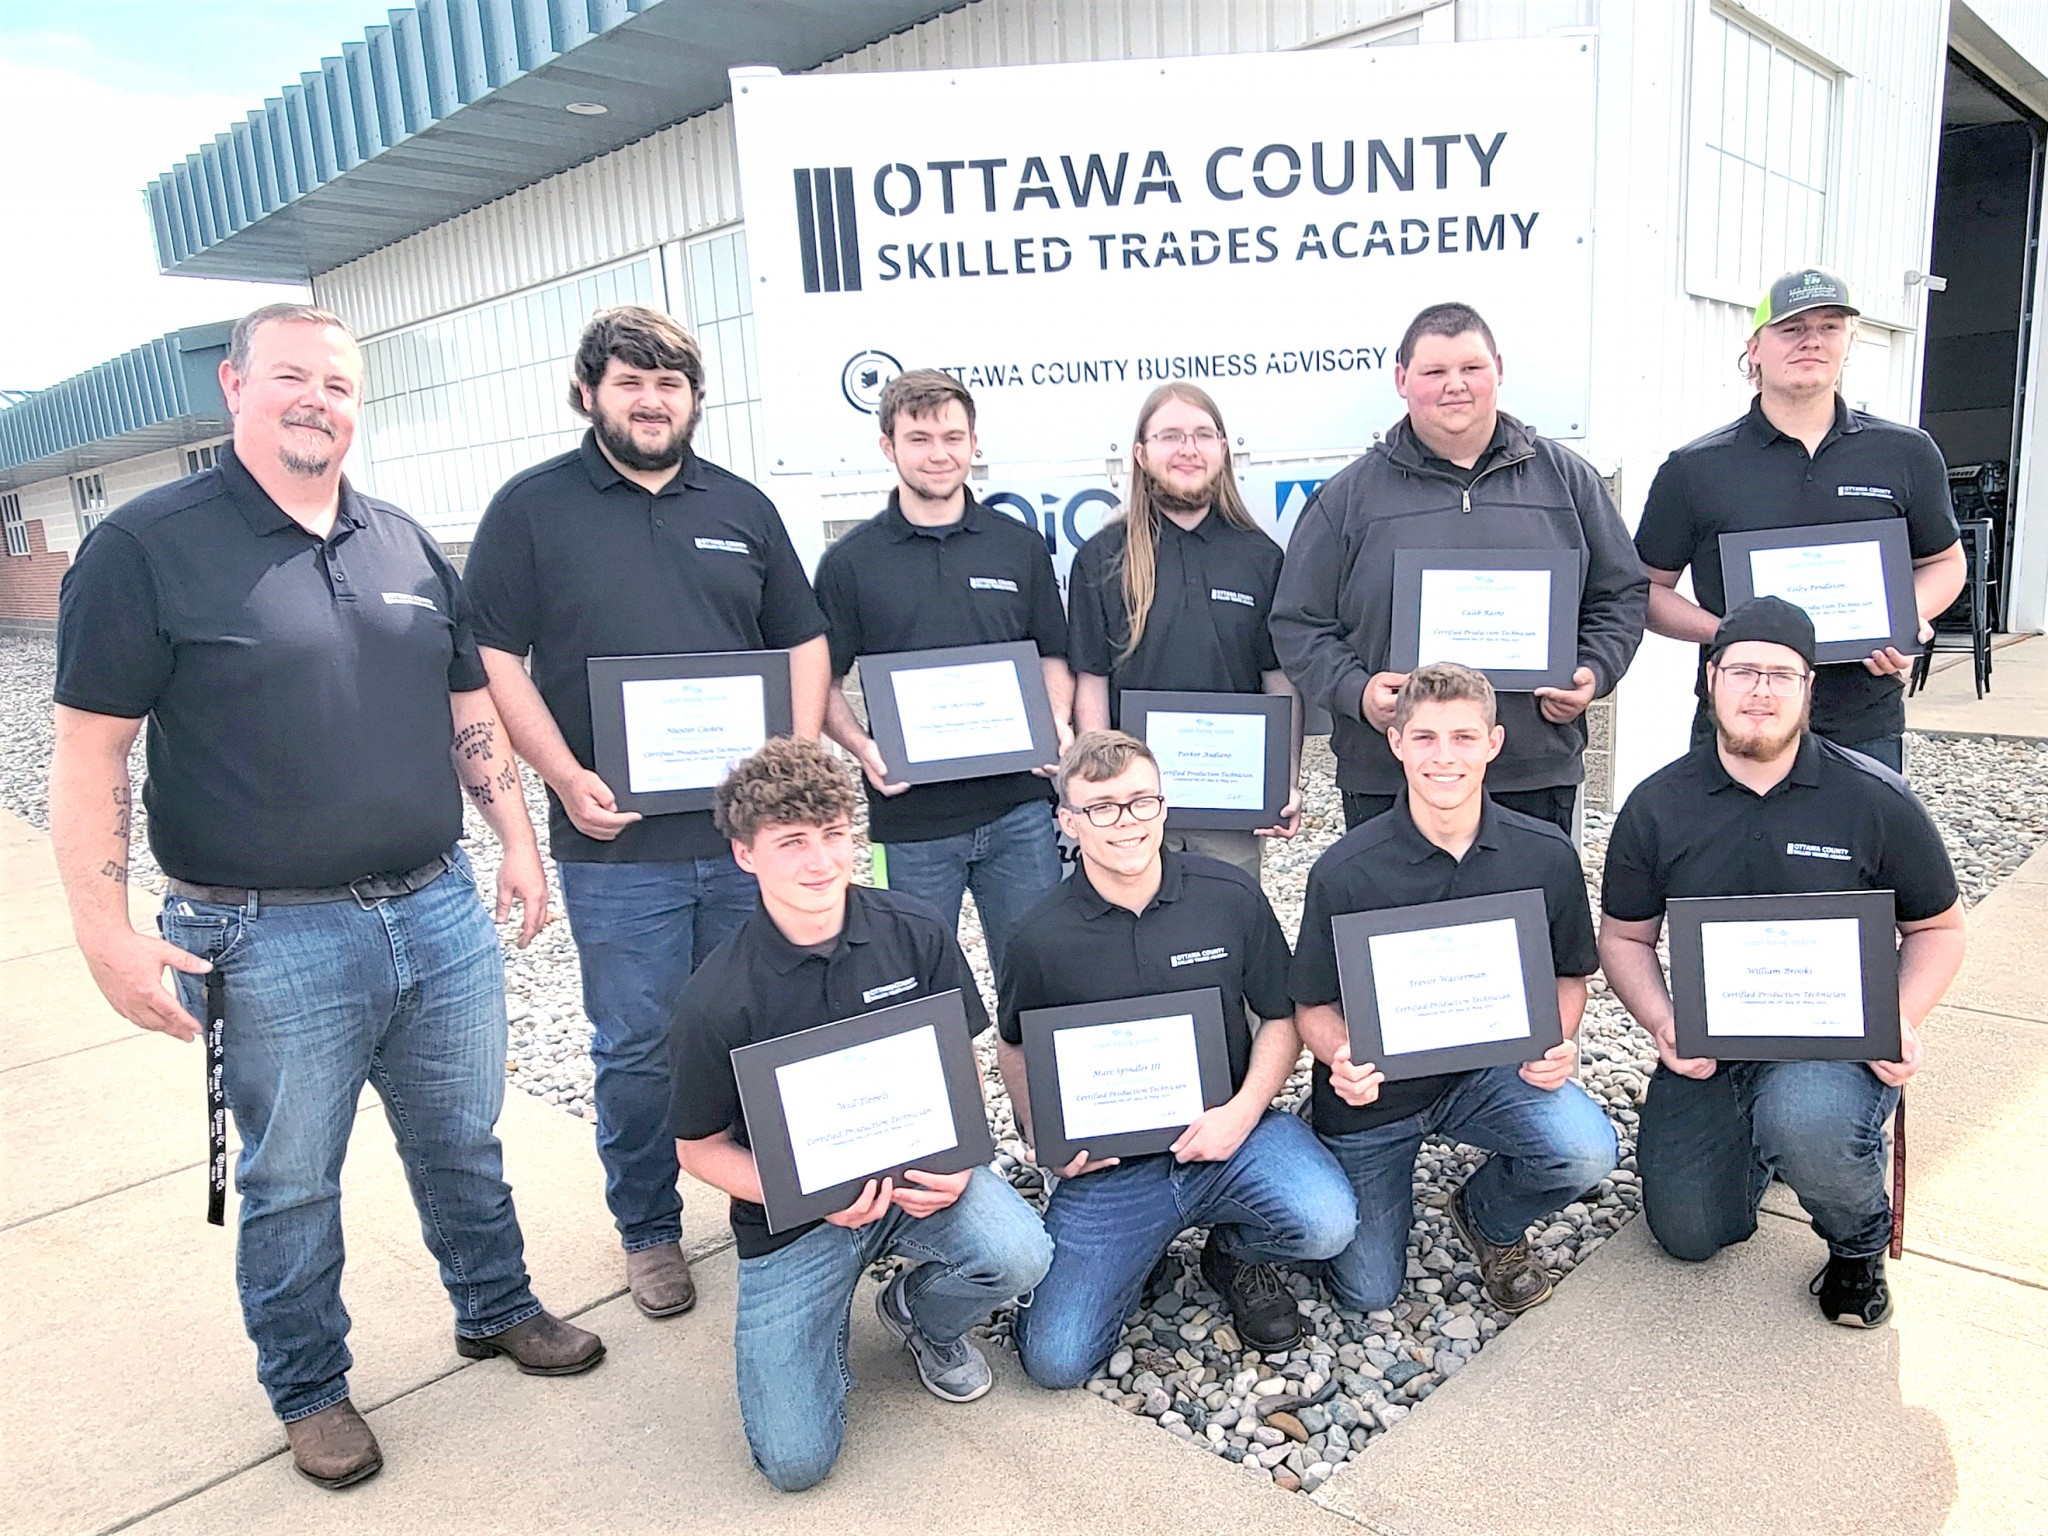 Ottawa County Skilled Trades Academy 2021 graduates with instructor Bill Hutchisson, Northwest State Community College/Customer Training Solutions. (Submitted photo)